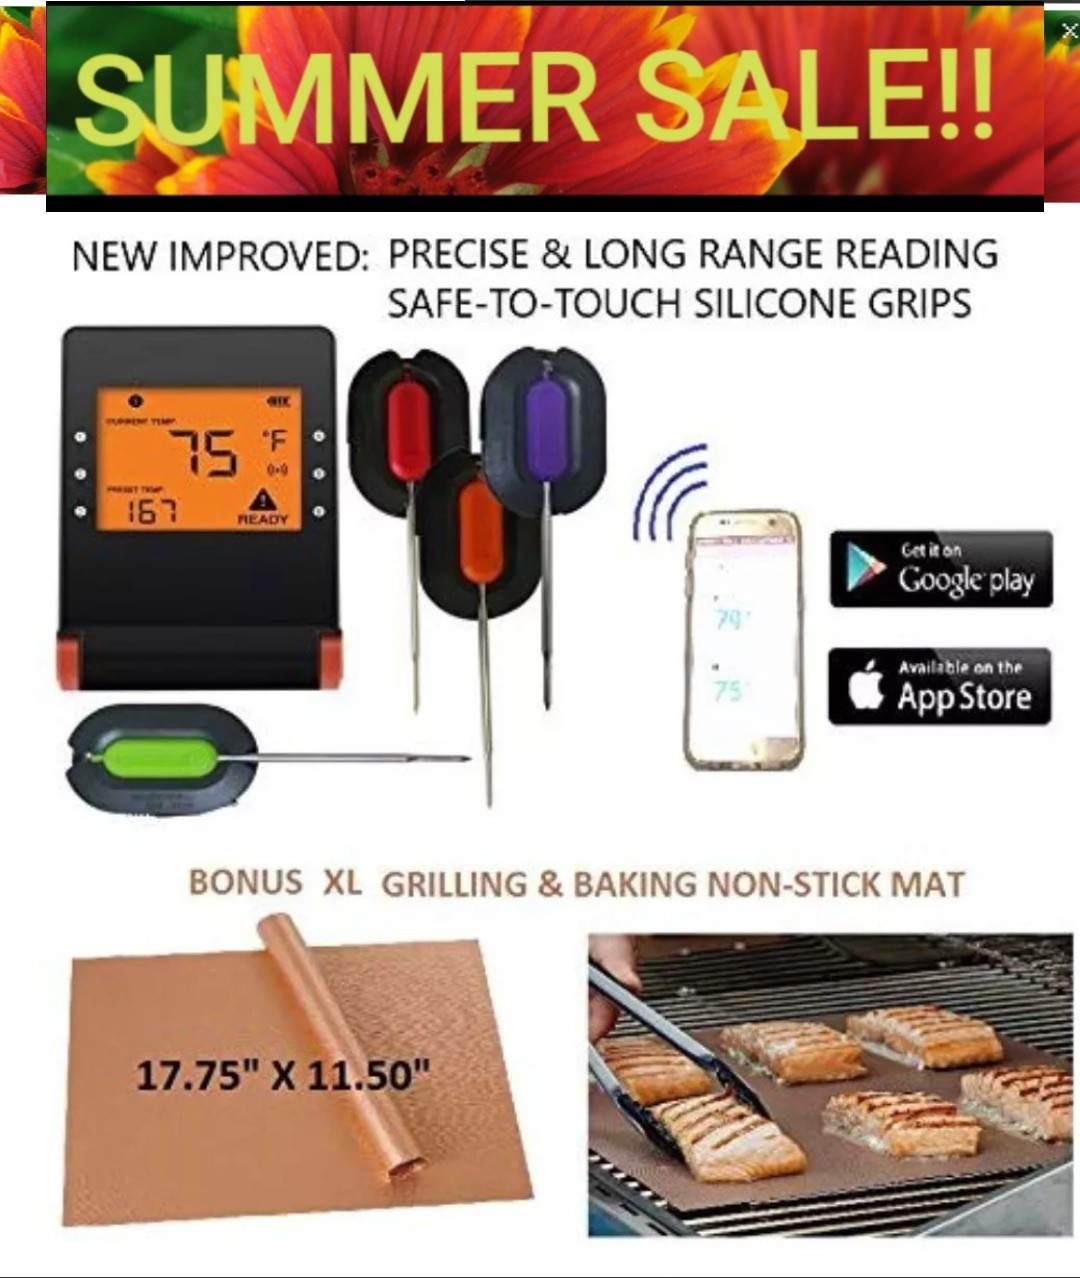 WIRELESS MEAT THERMOMETER + FREE XL NON-STICK COPPER MAT for BBQ, Grill, Bake & Smoke. Bluetooth/Phone digital LCD display Silicone FDA Probes, IMPROVED MODEL for Cooking, Grilling, Baking & Smoking by NOBILIS PRO